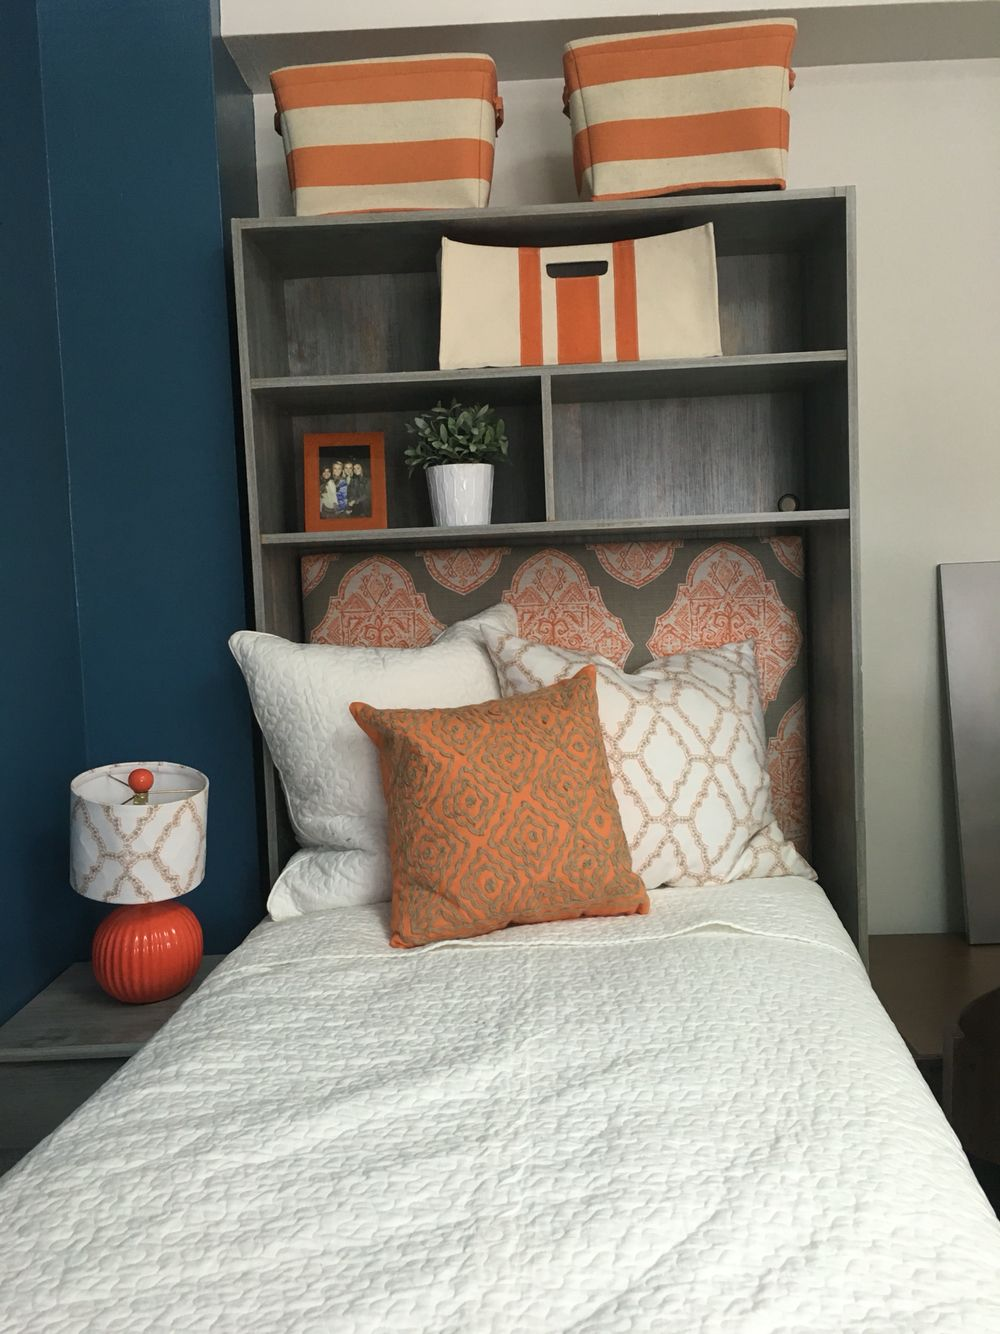 Dorm bed with headboard and storage Auburn